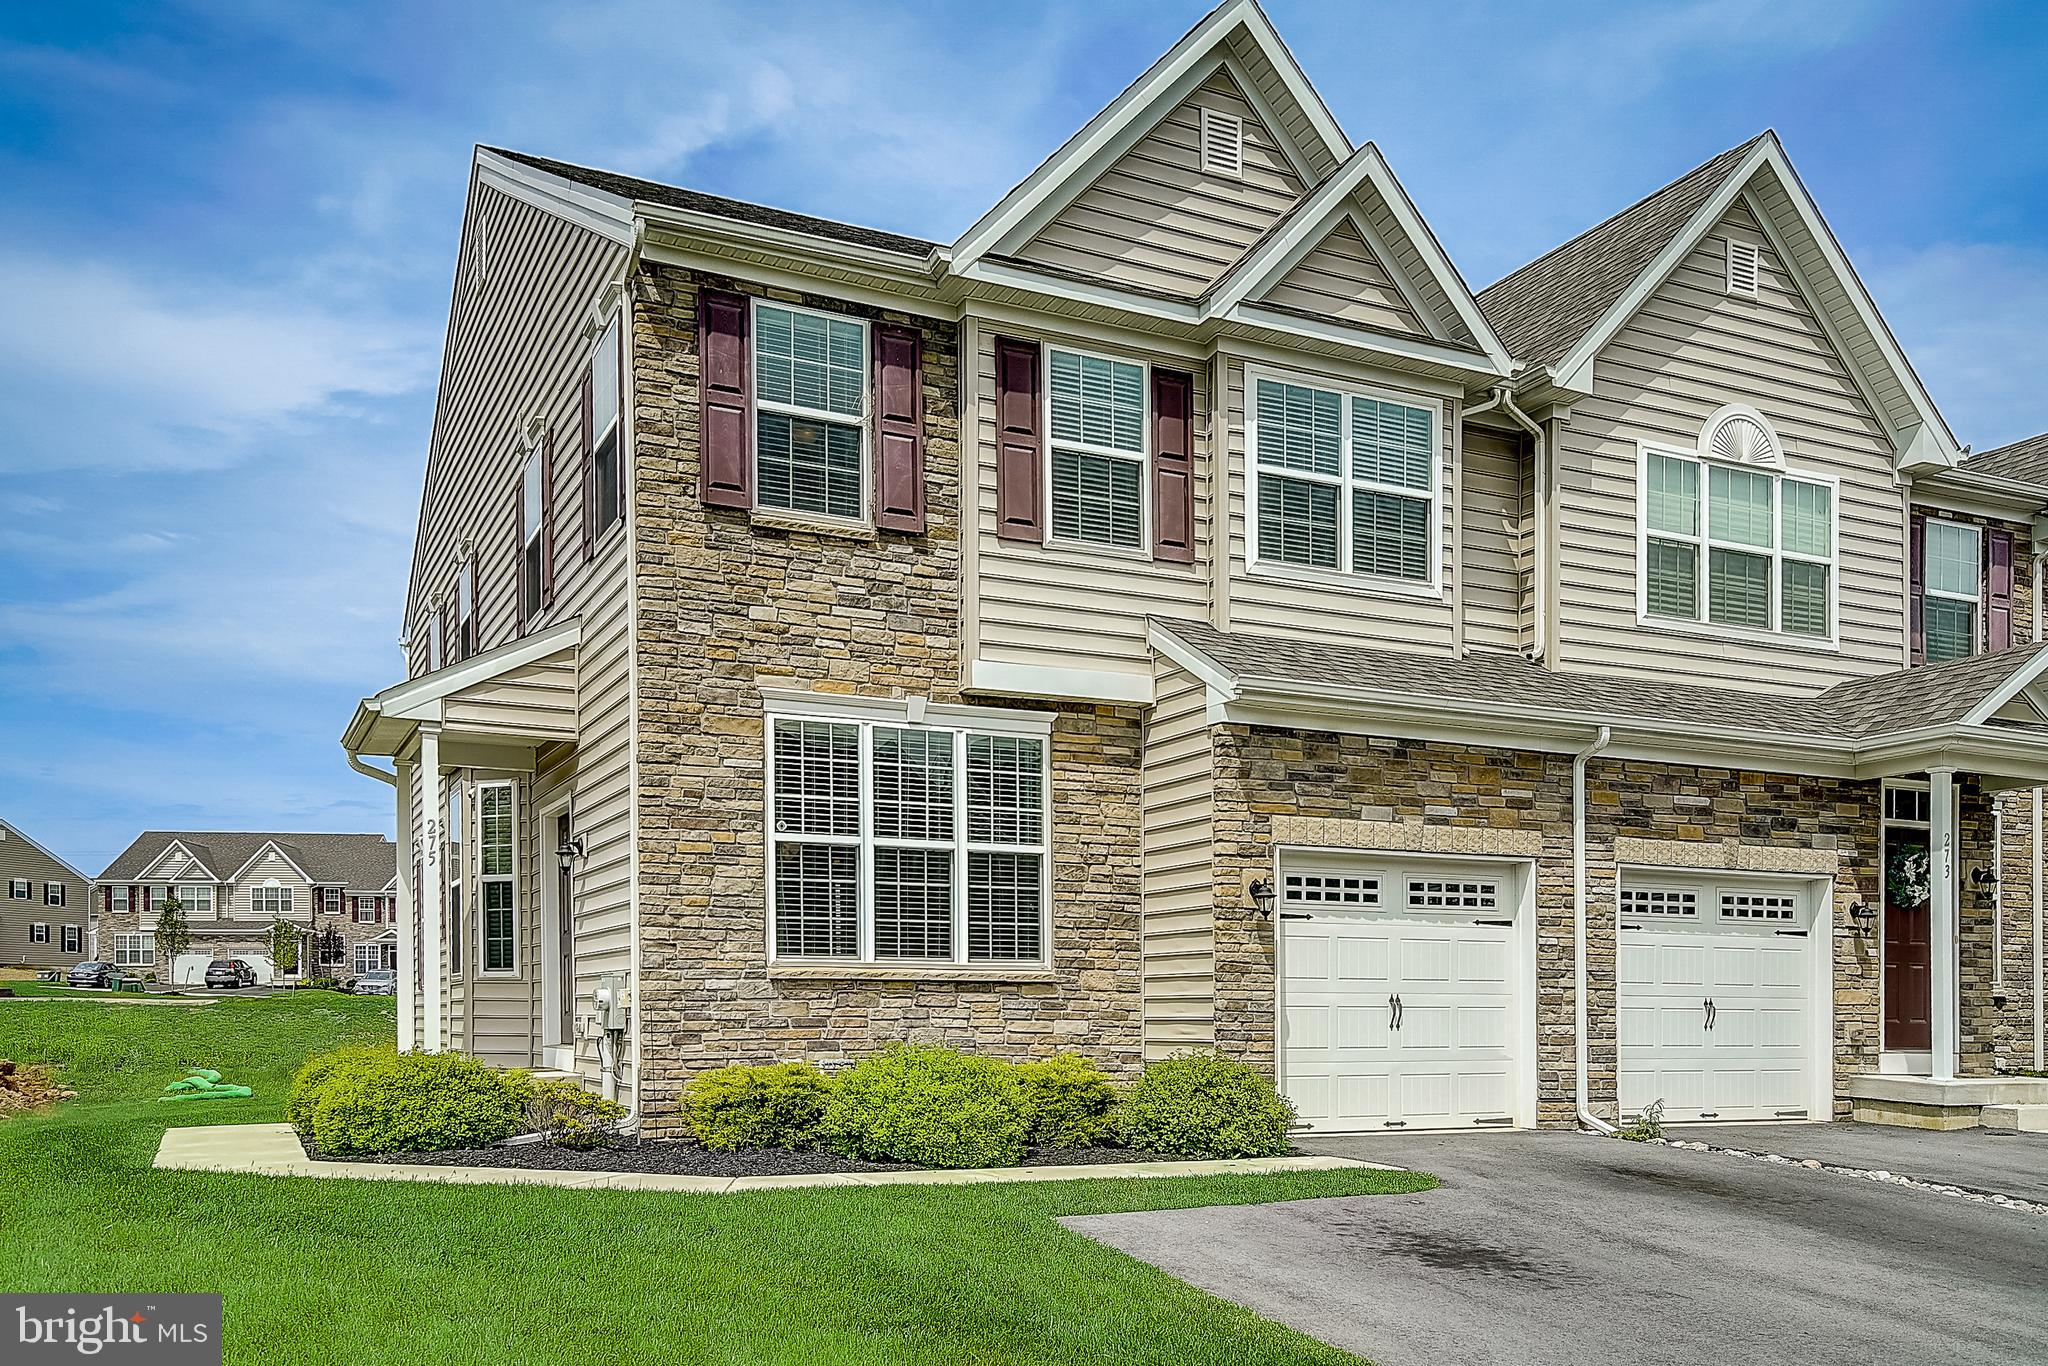 275 RED CLOVER LANE, ALLENTOWN, PA 18104